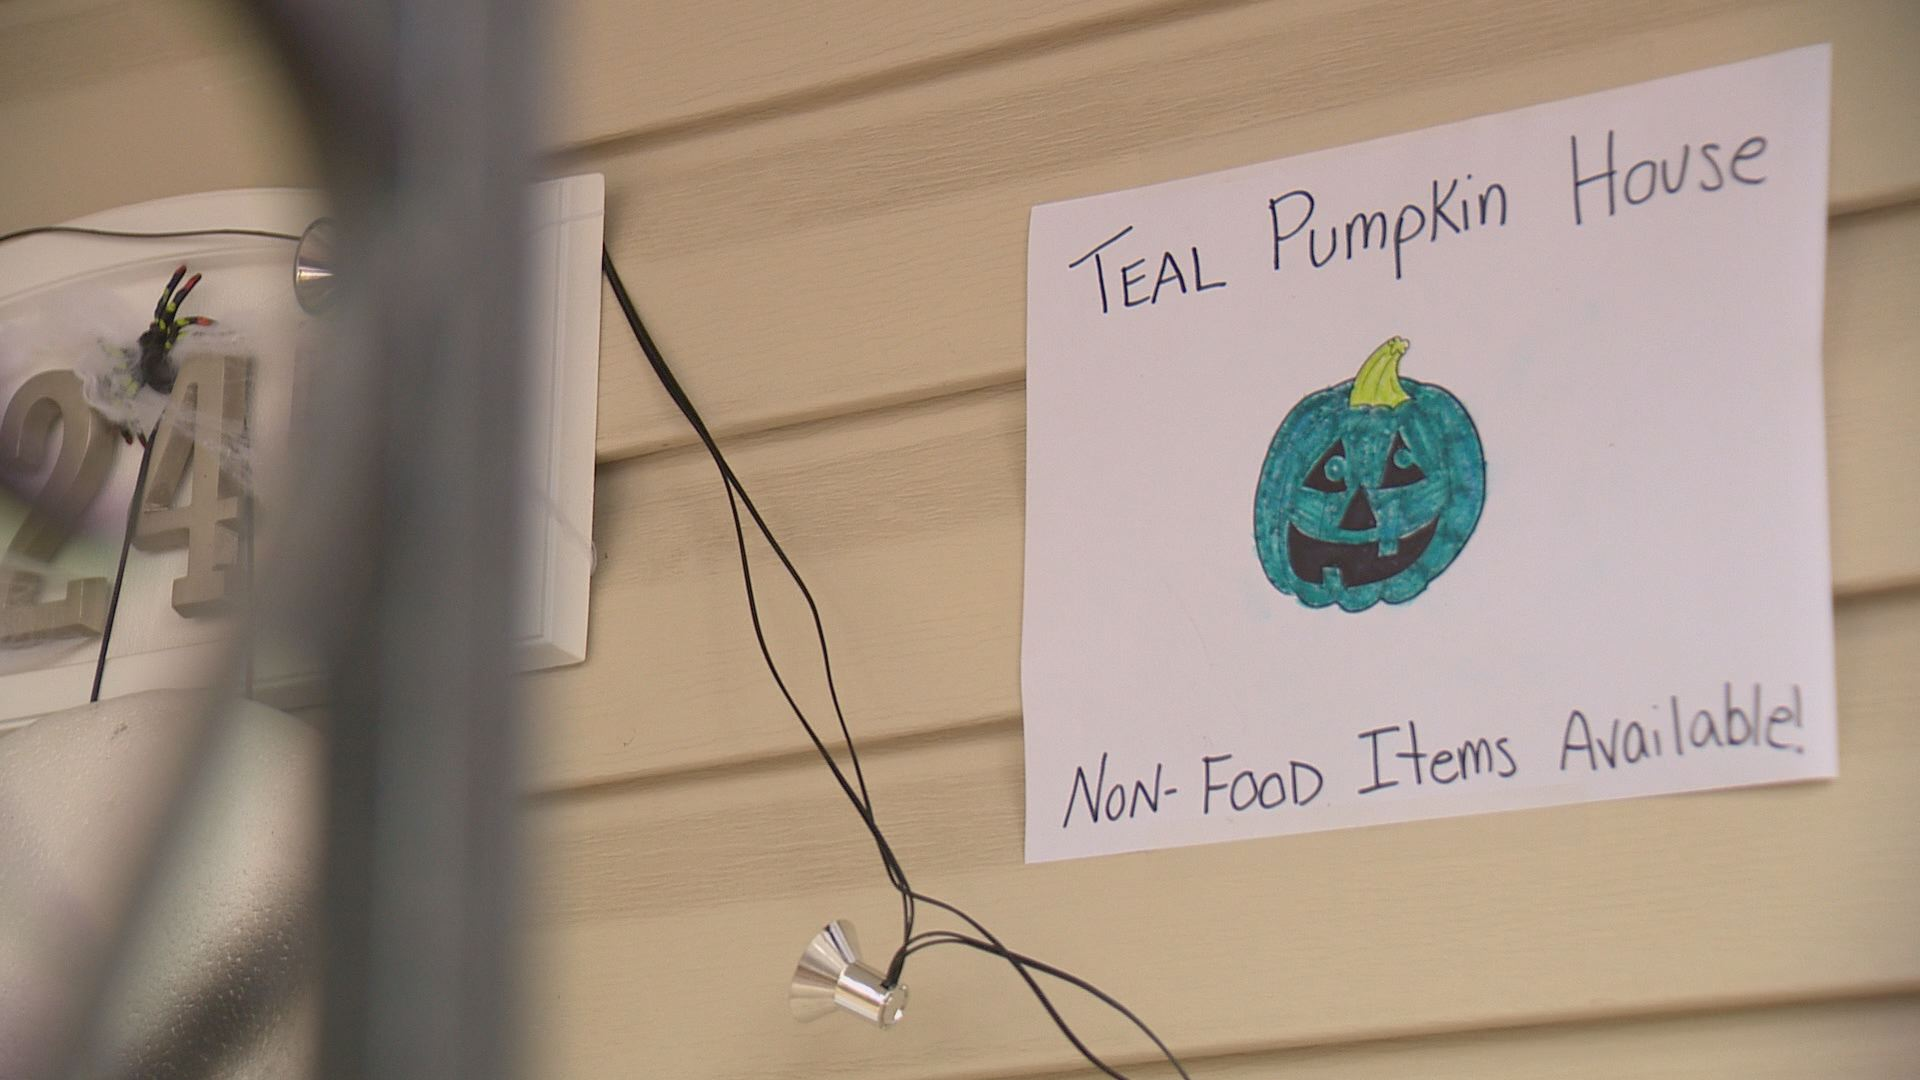 Teal pumpkins help kids with allergies have a safe Halloween